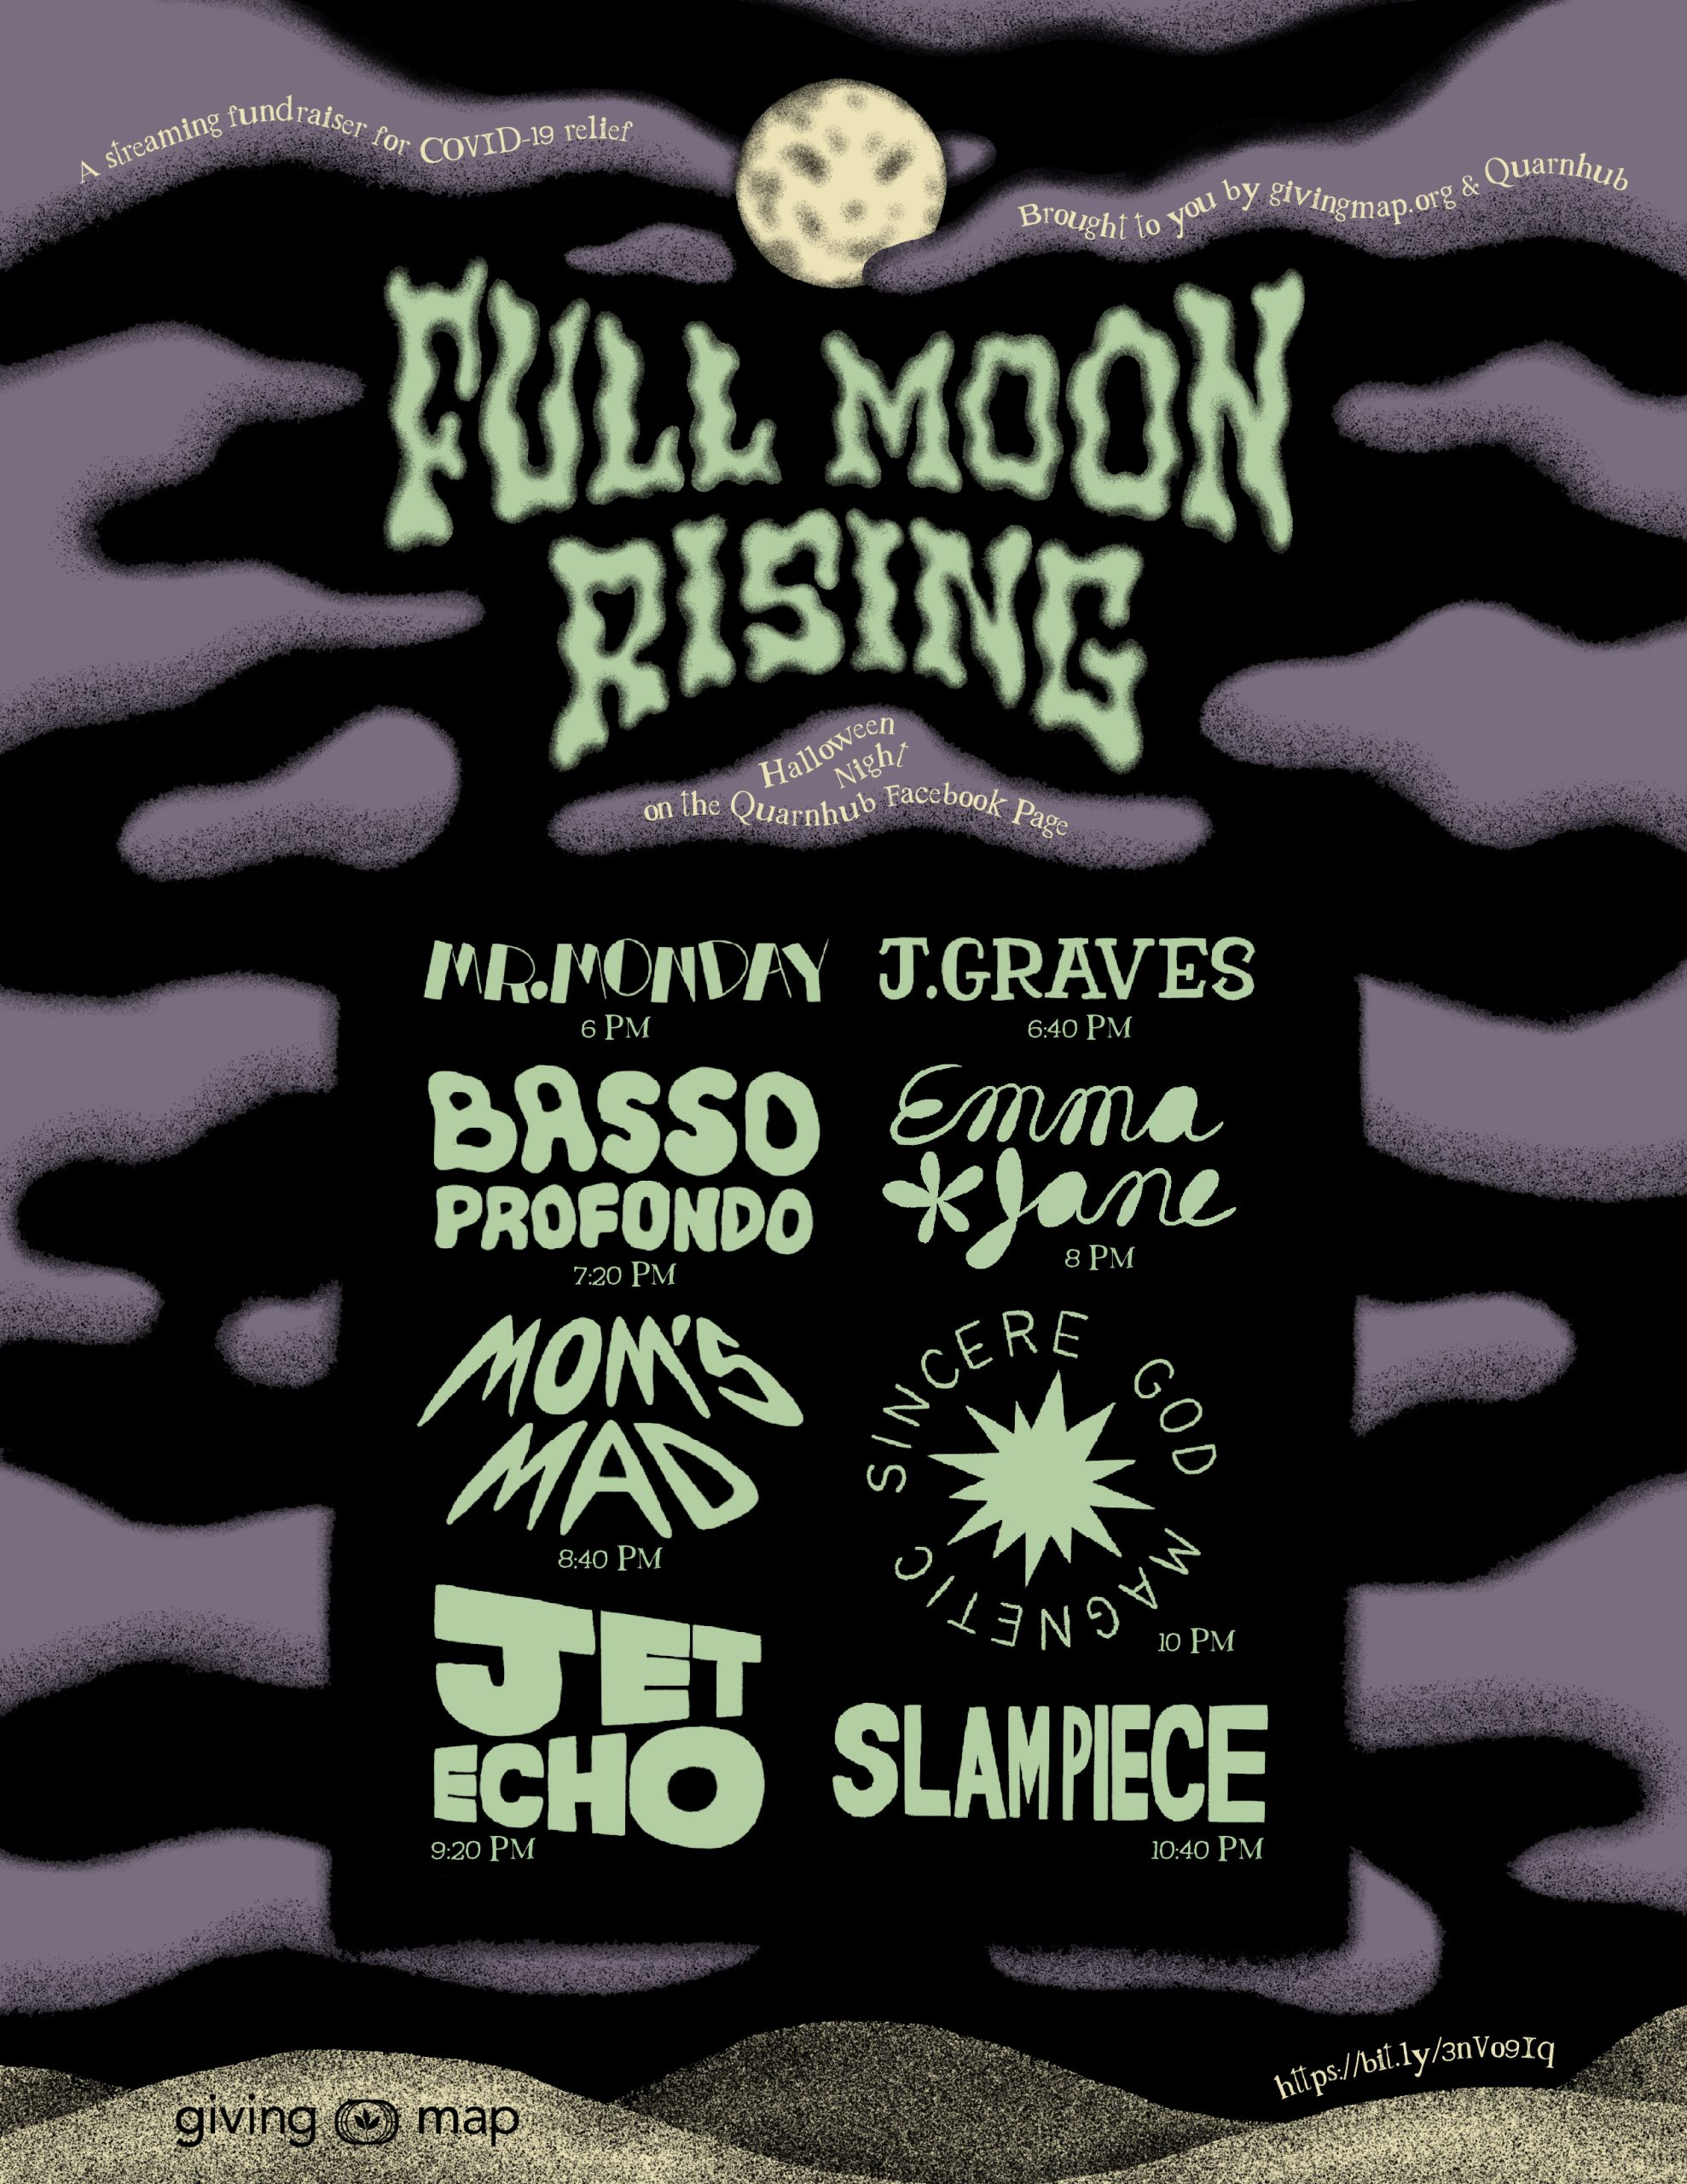 Full Moon Rising Halloween Benefit Poster